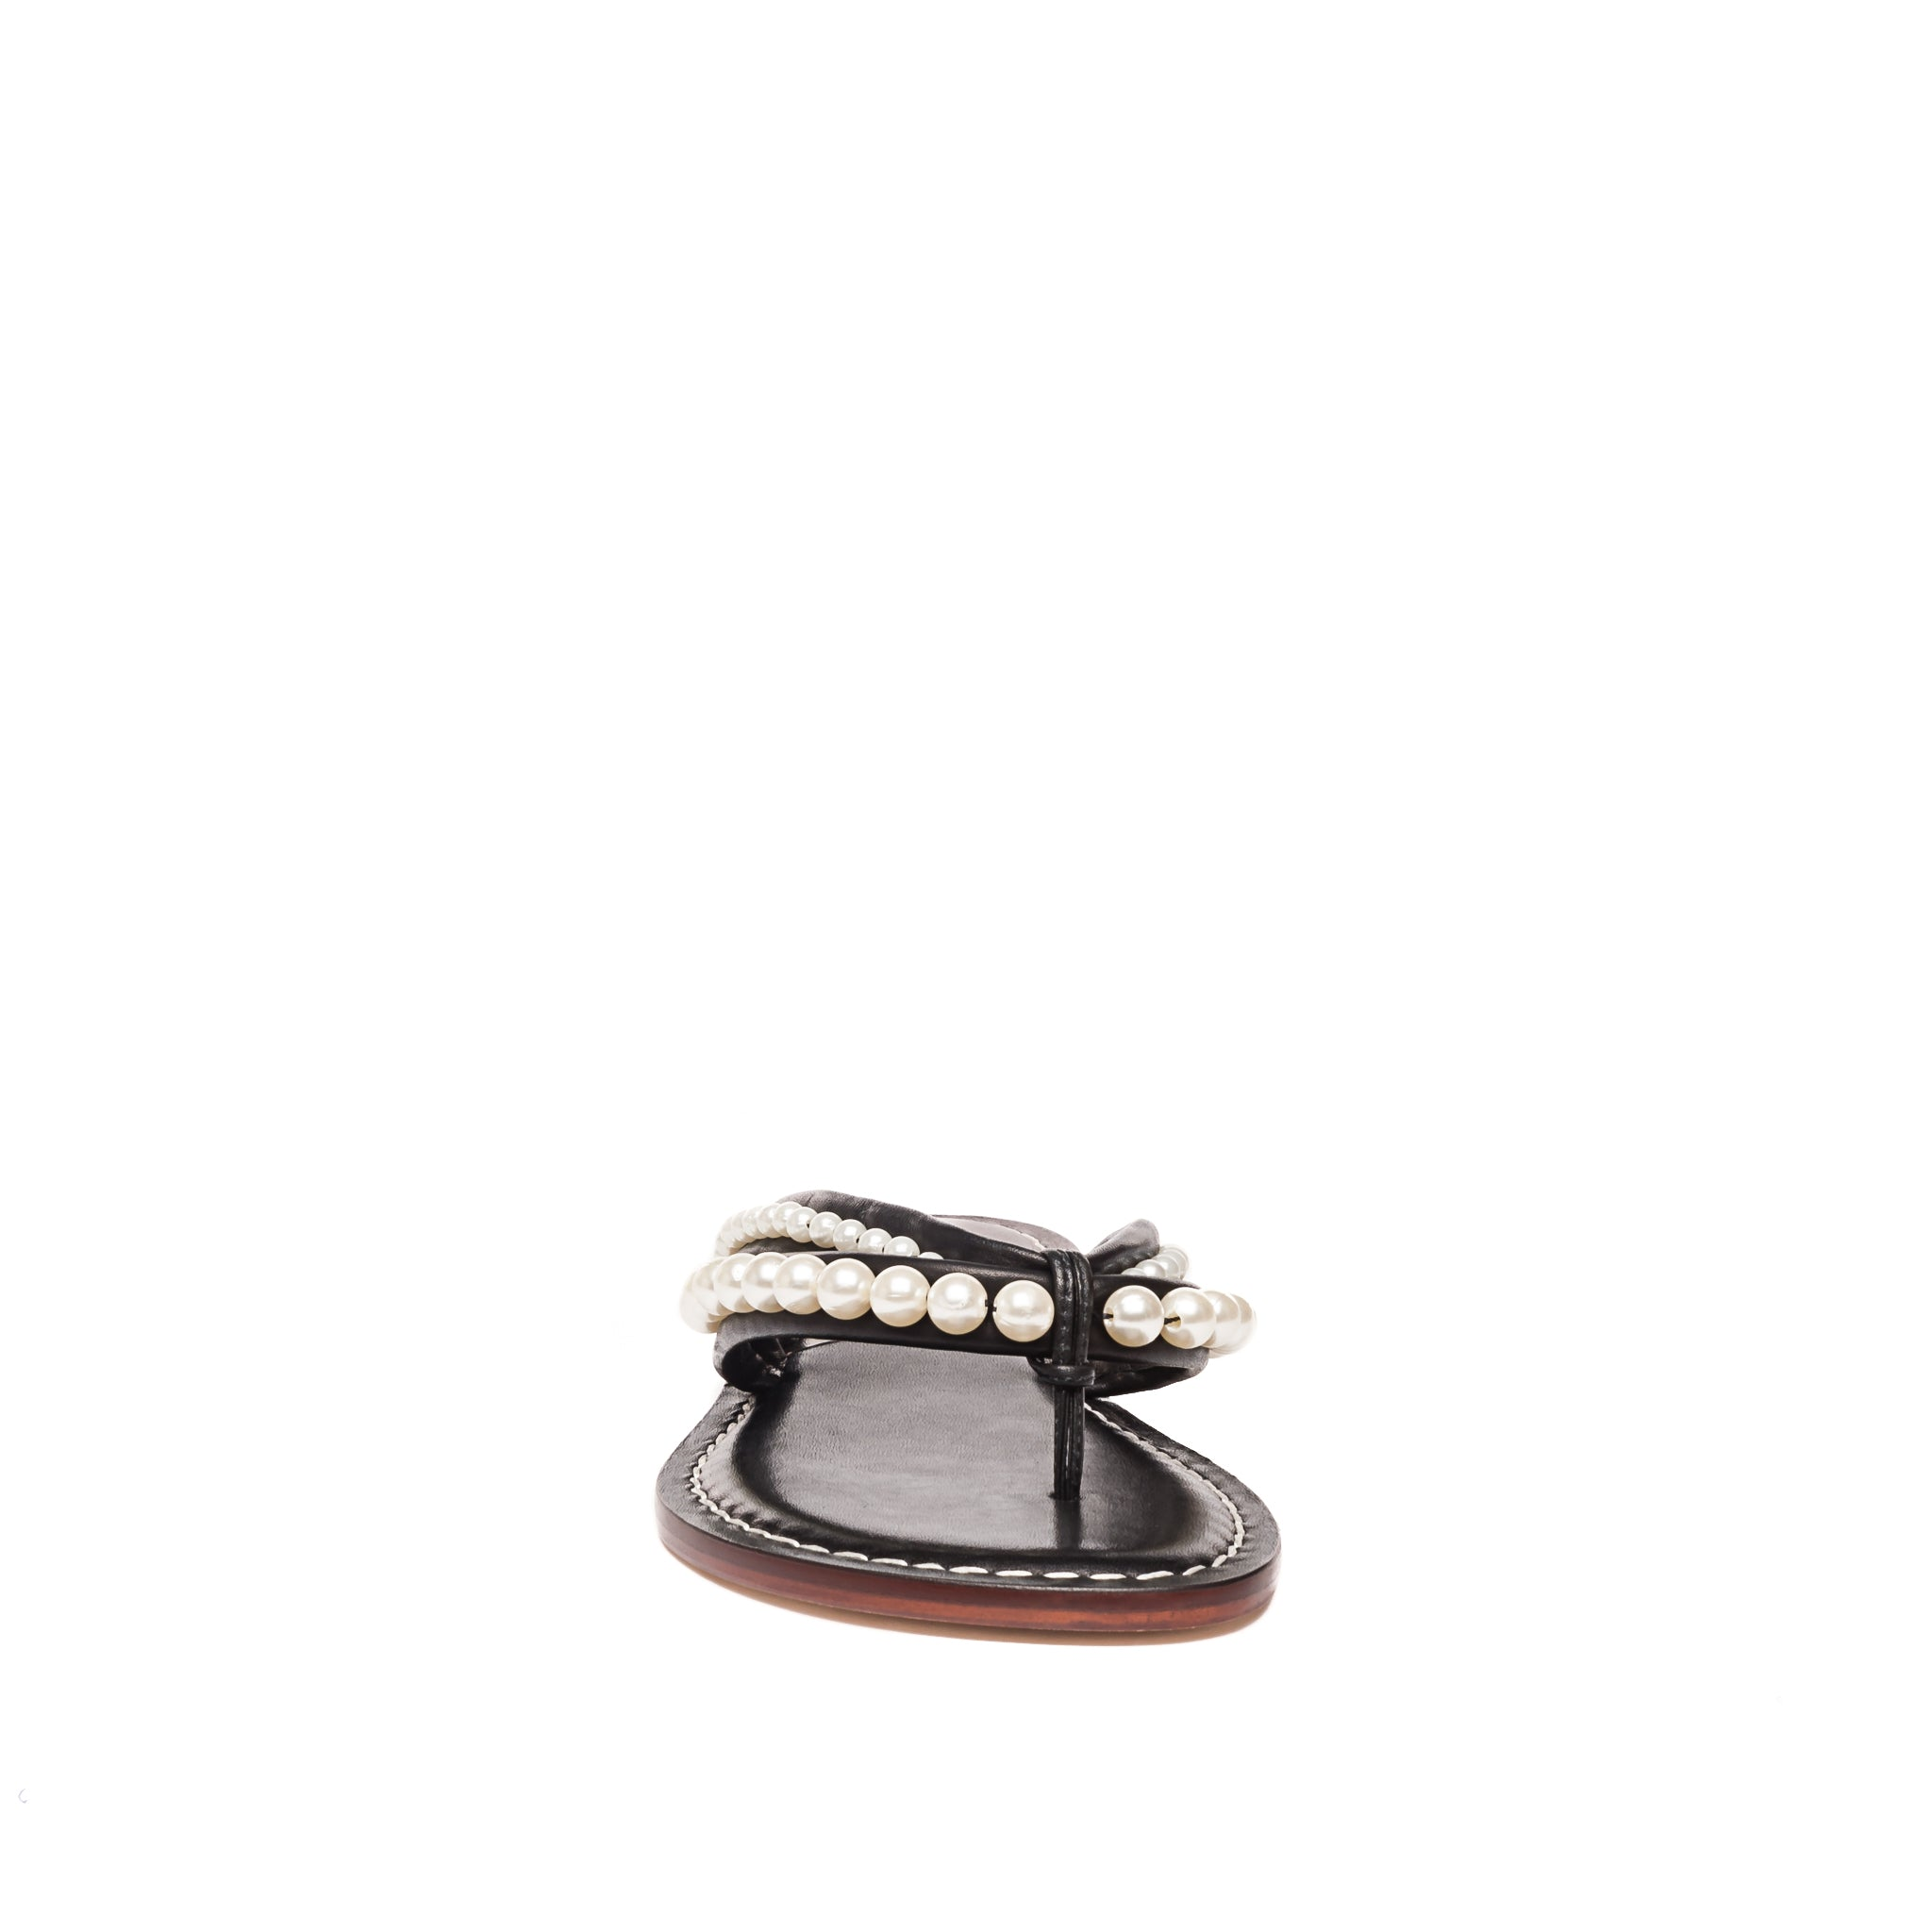 Front photo of Bernardo 1946's Miami pearl embellished 2 strap sandal, in black leather.